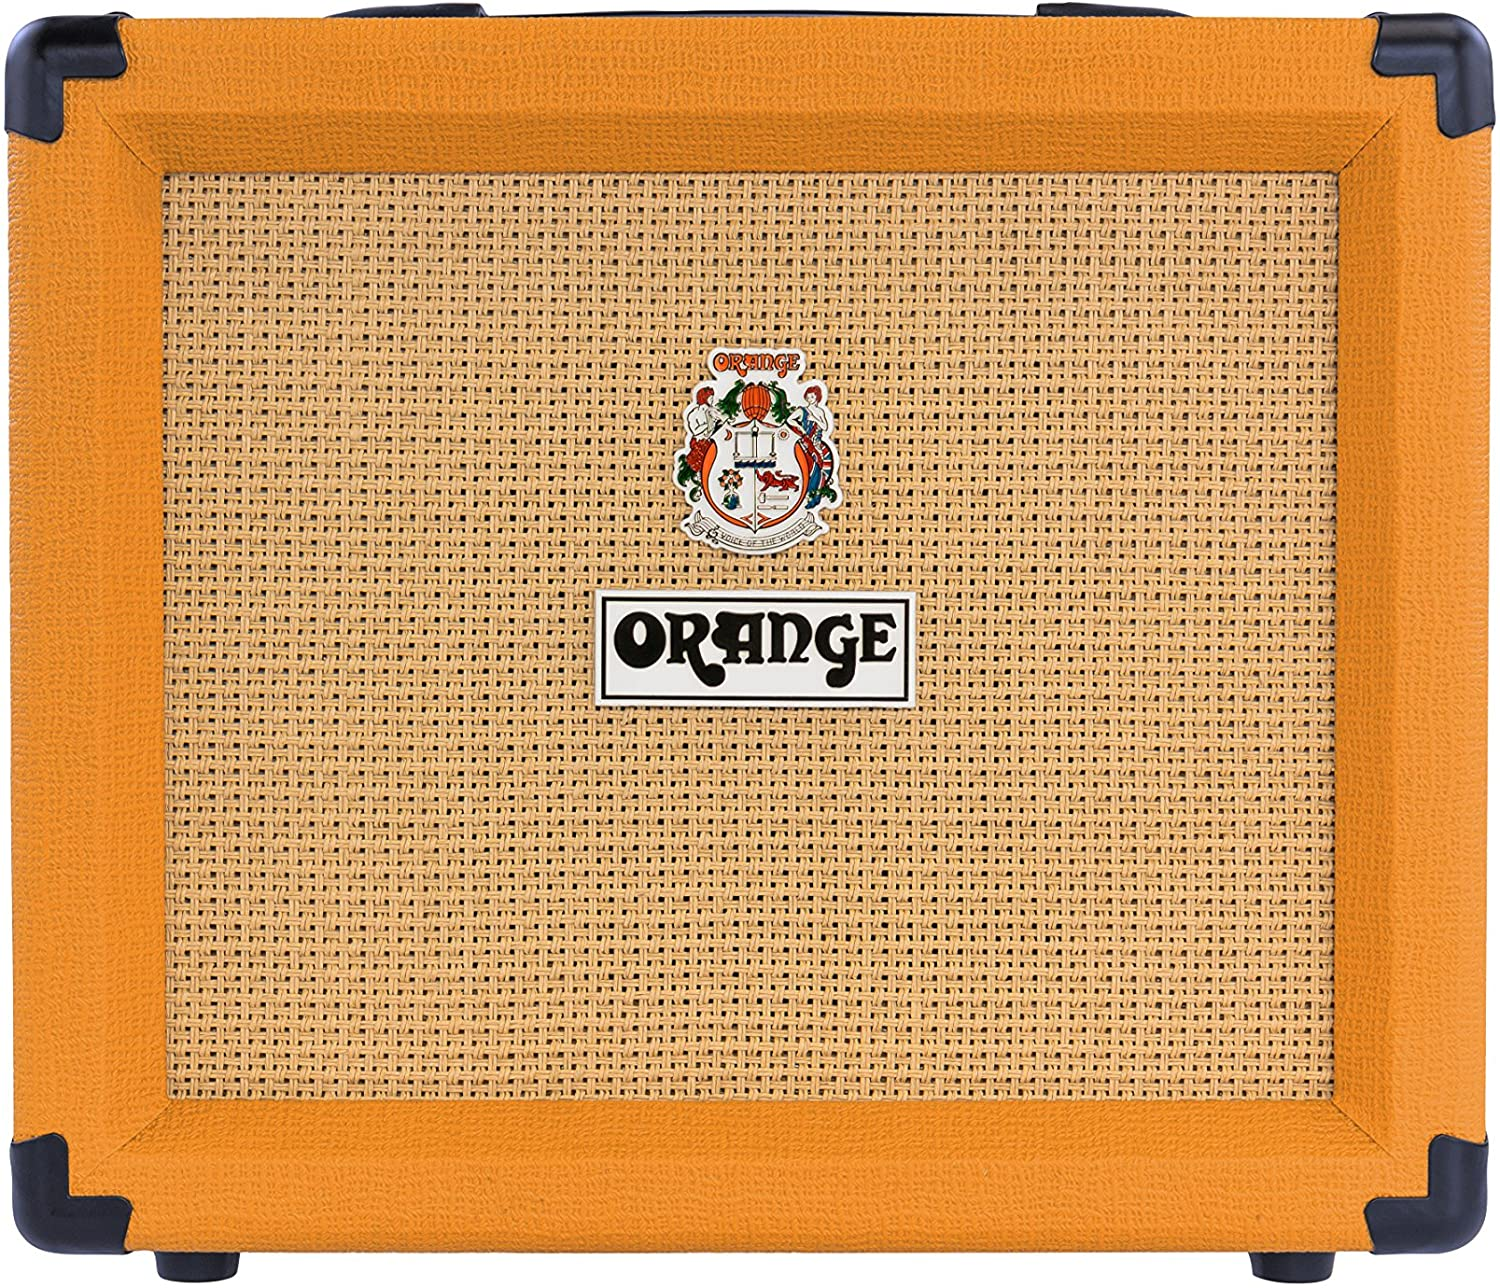 Orange Crush 20 Twin-Channel 20W Guitar Amplifier